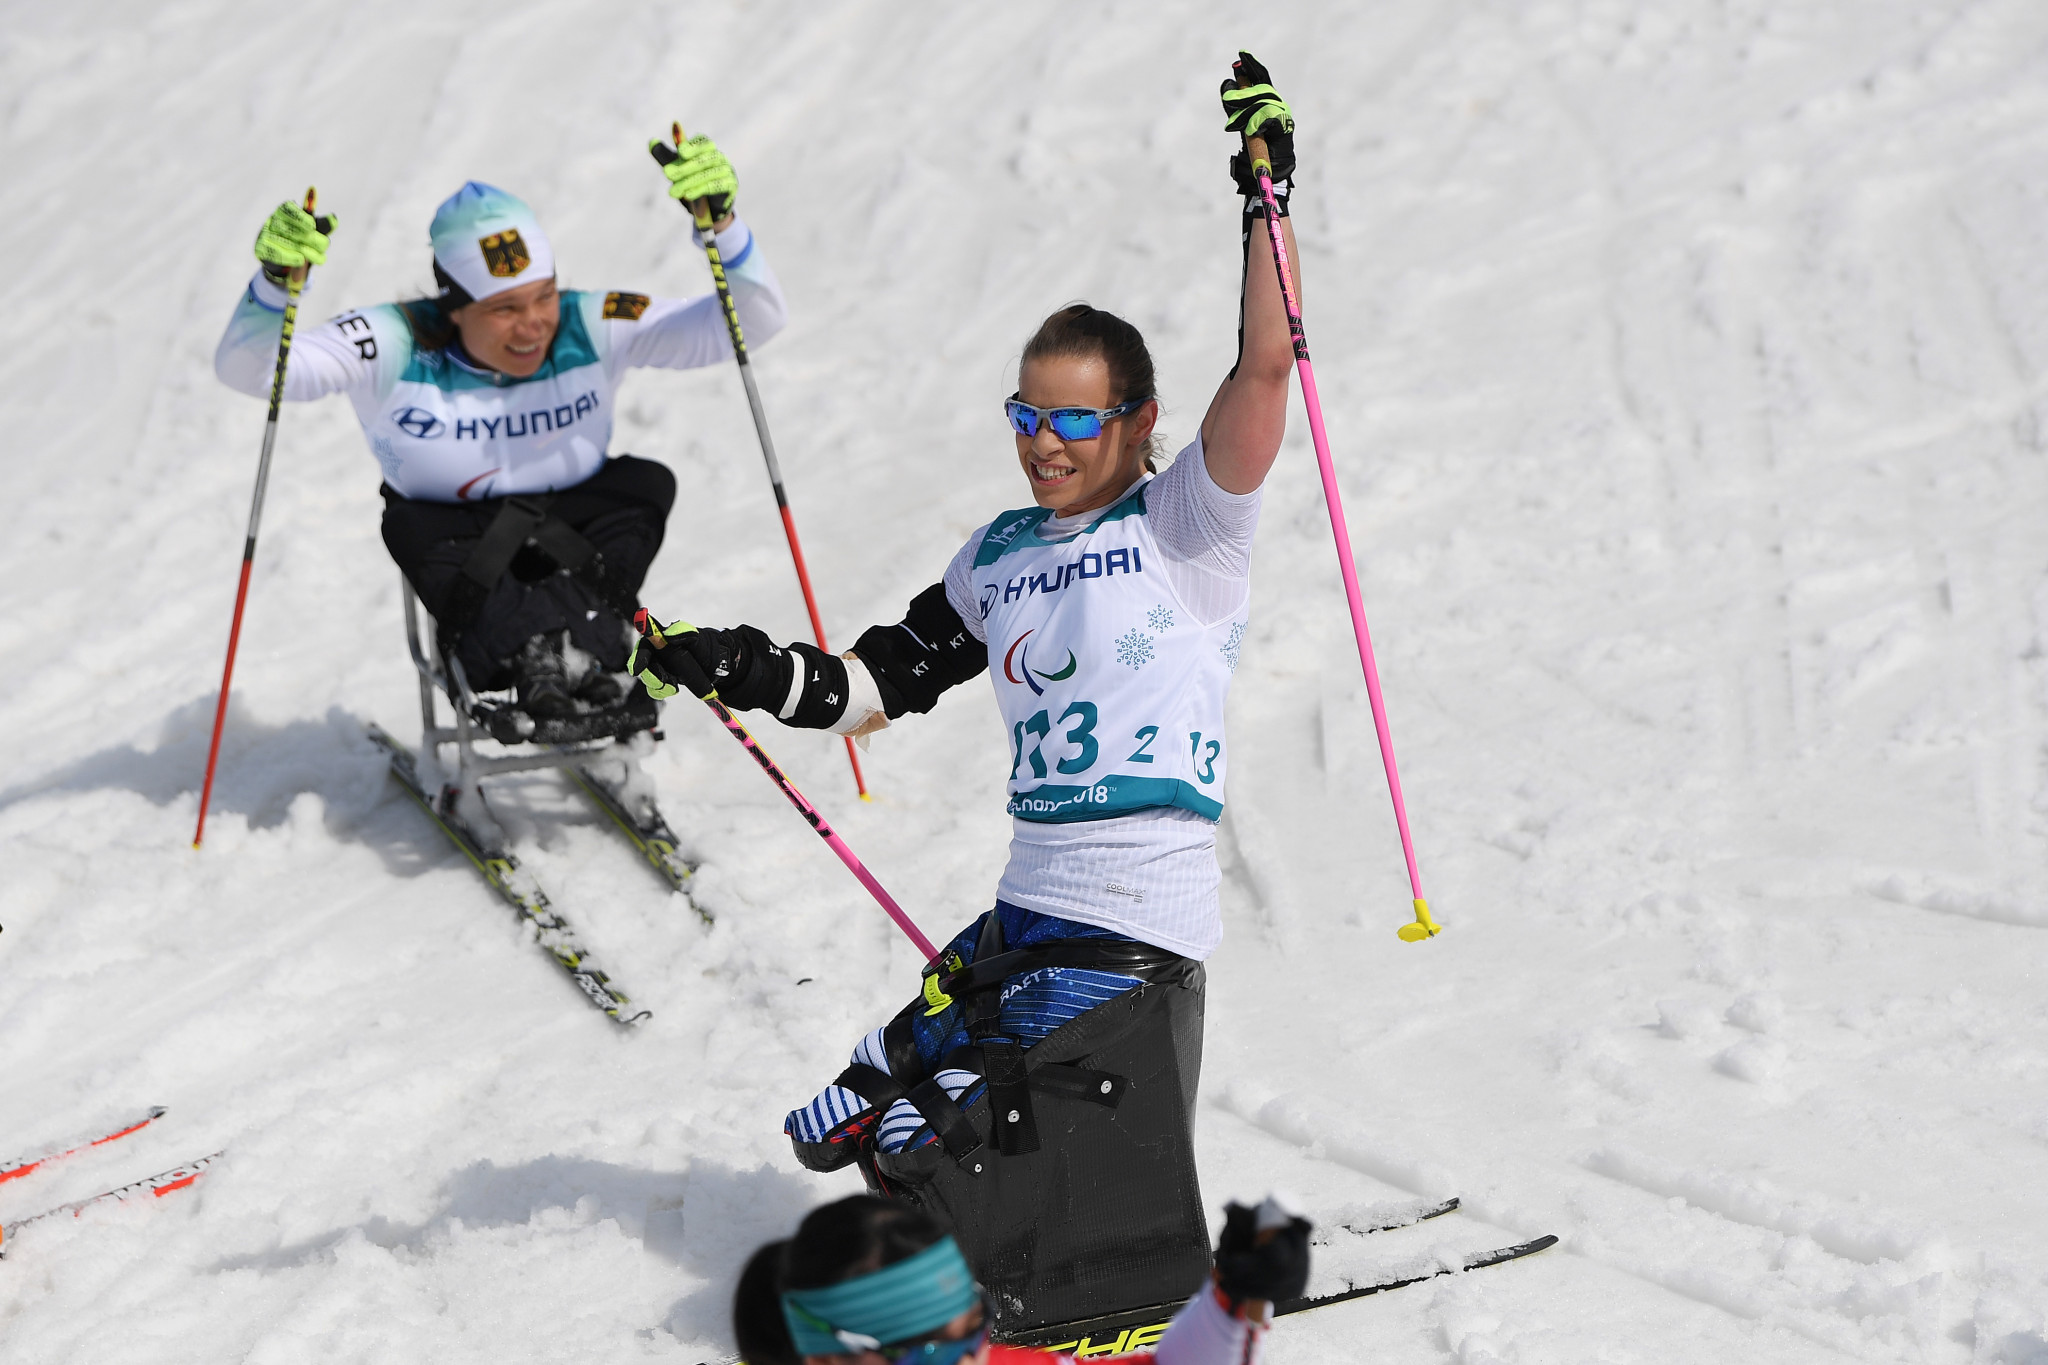 Masters beats American rival Gretsch to win gold at Para Nordic Skiing World Cup